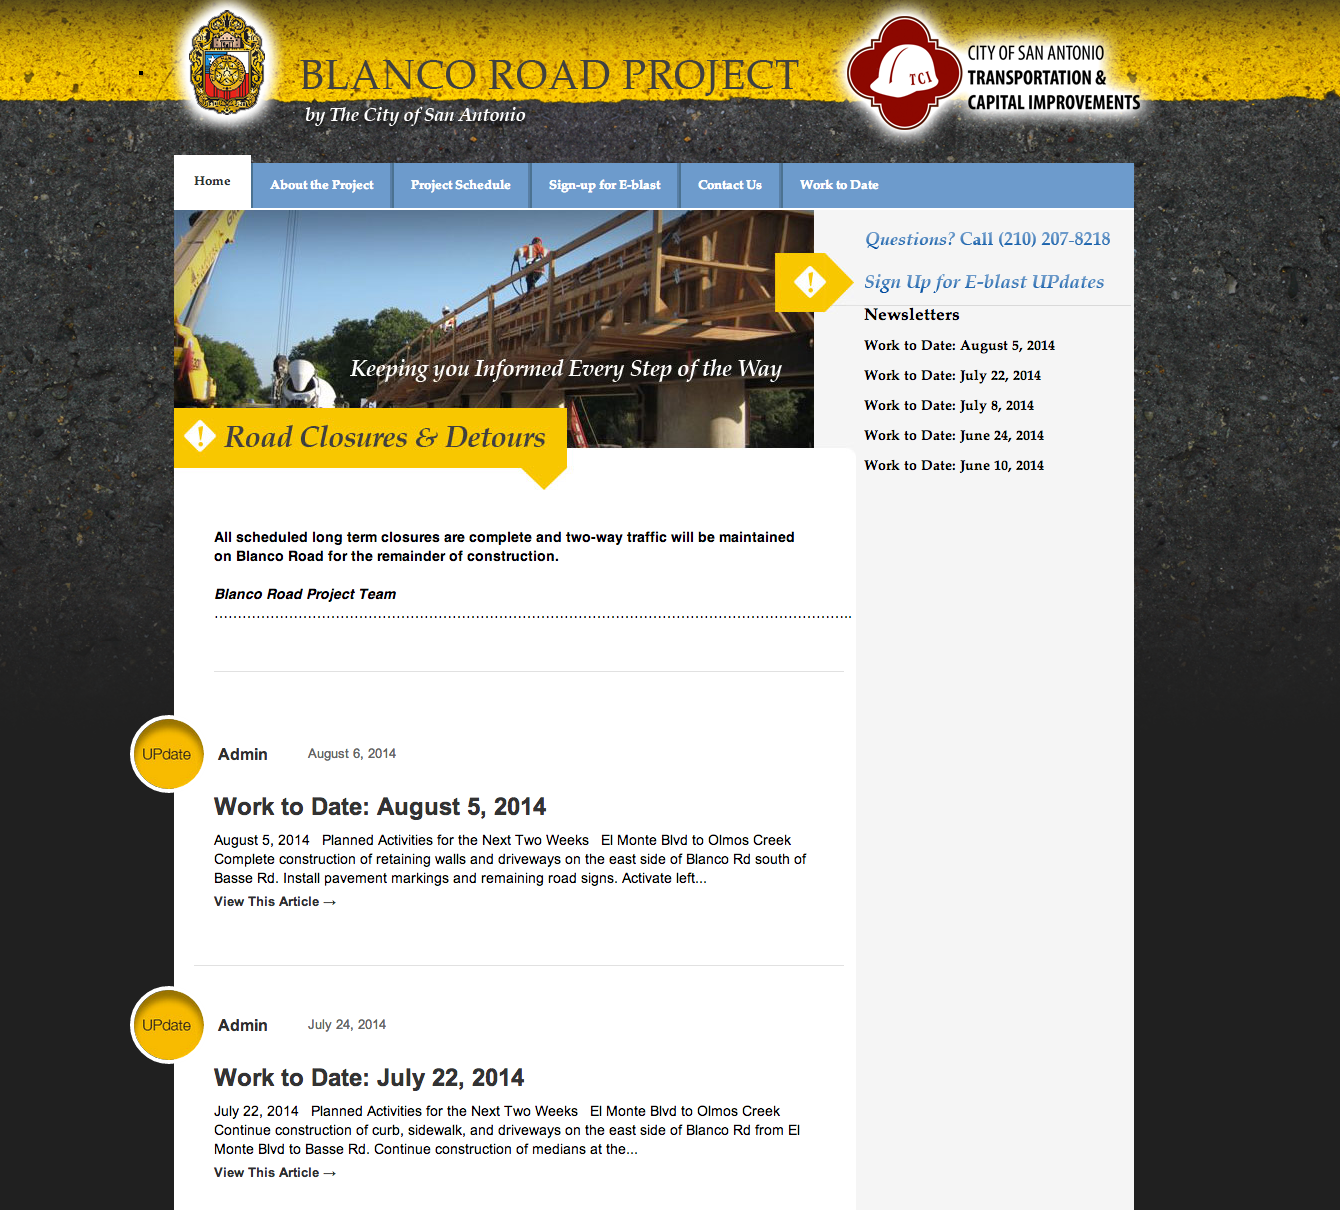 Blanco Rd Project